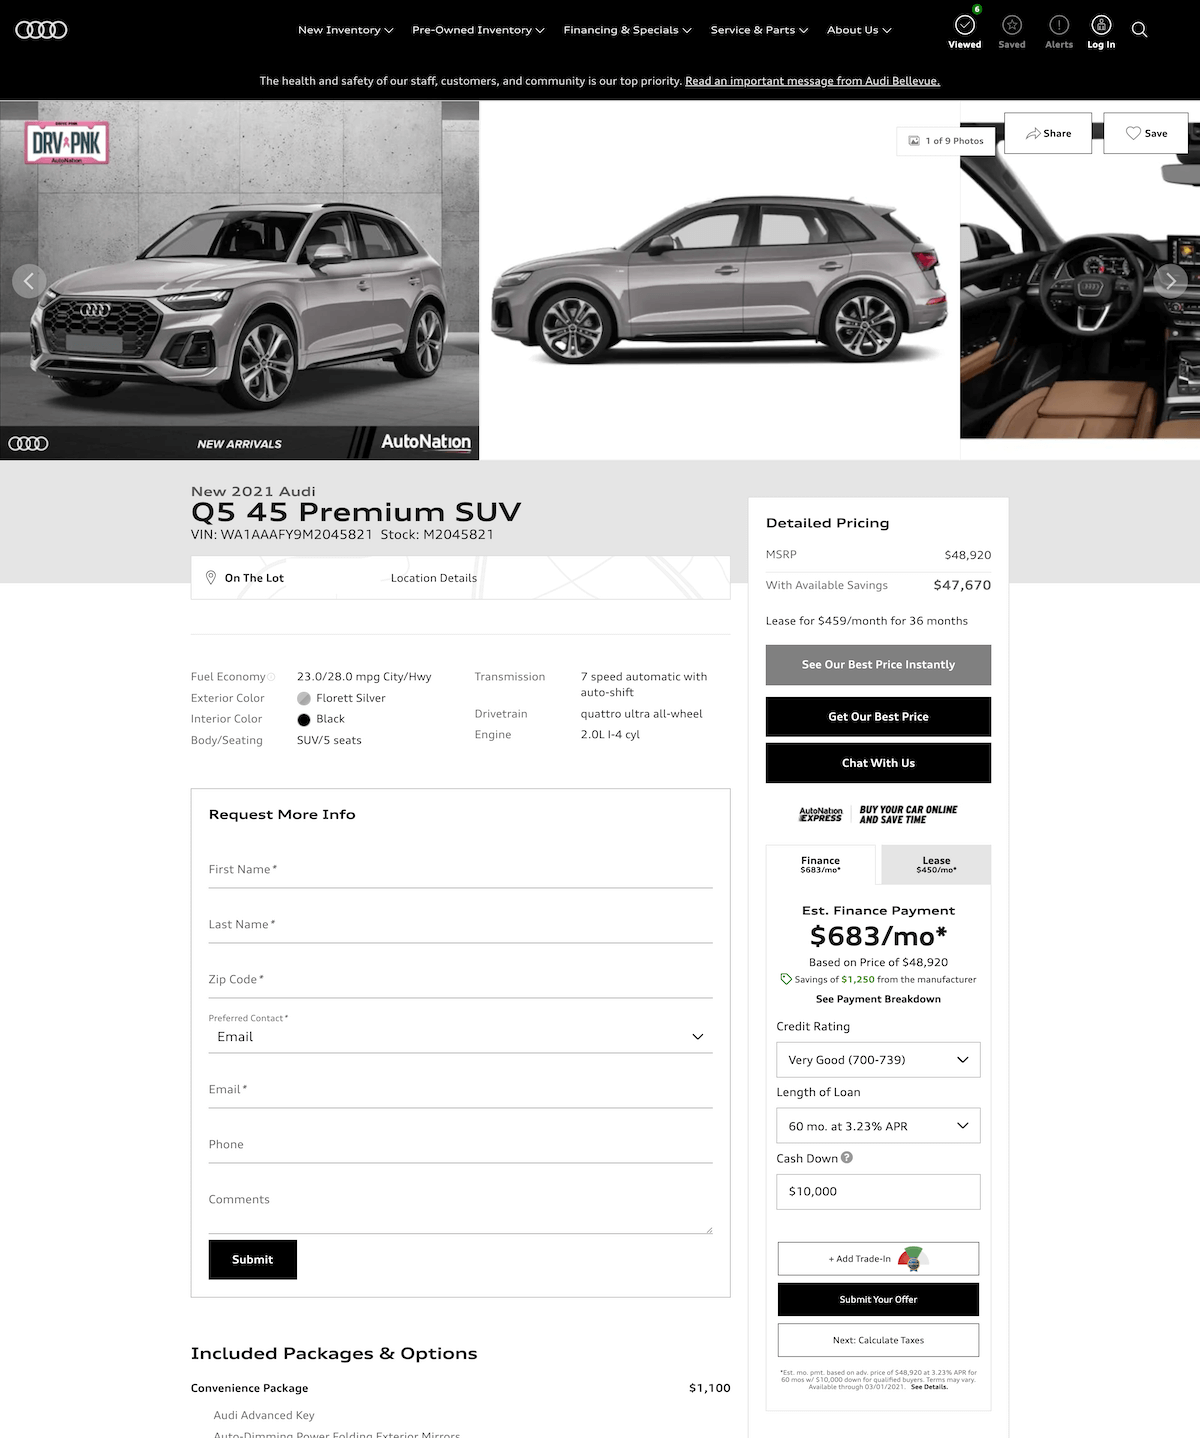 Audi Las Vegas vehicle details page